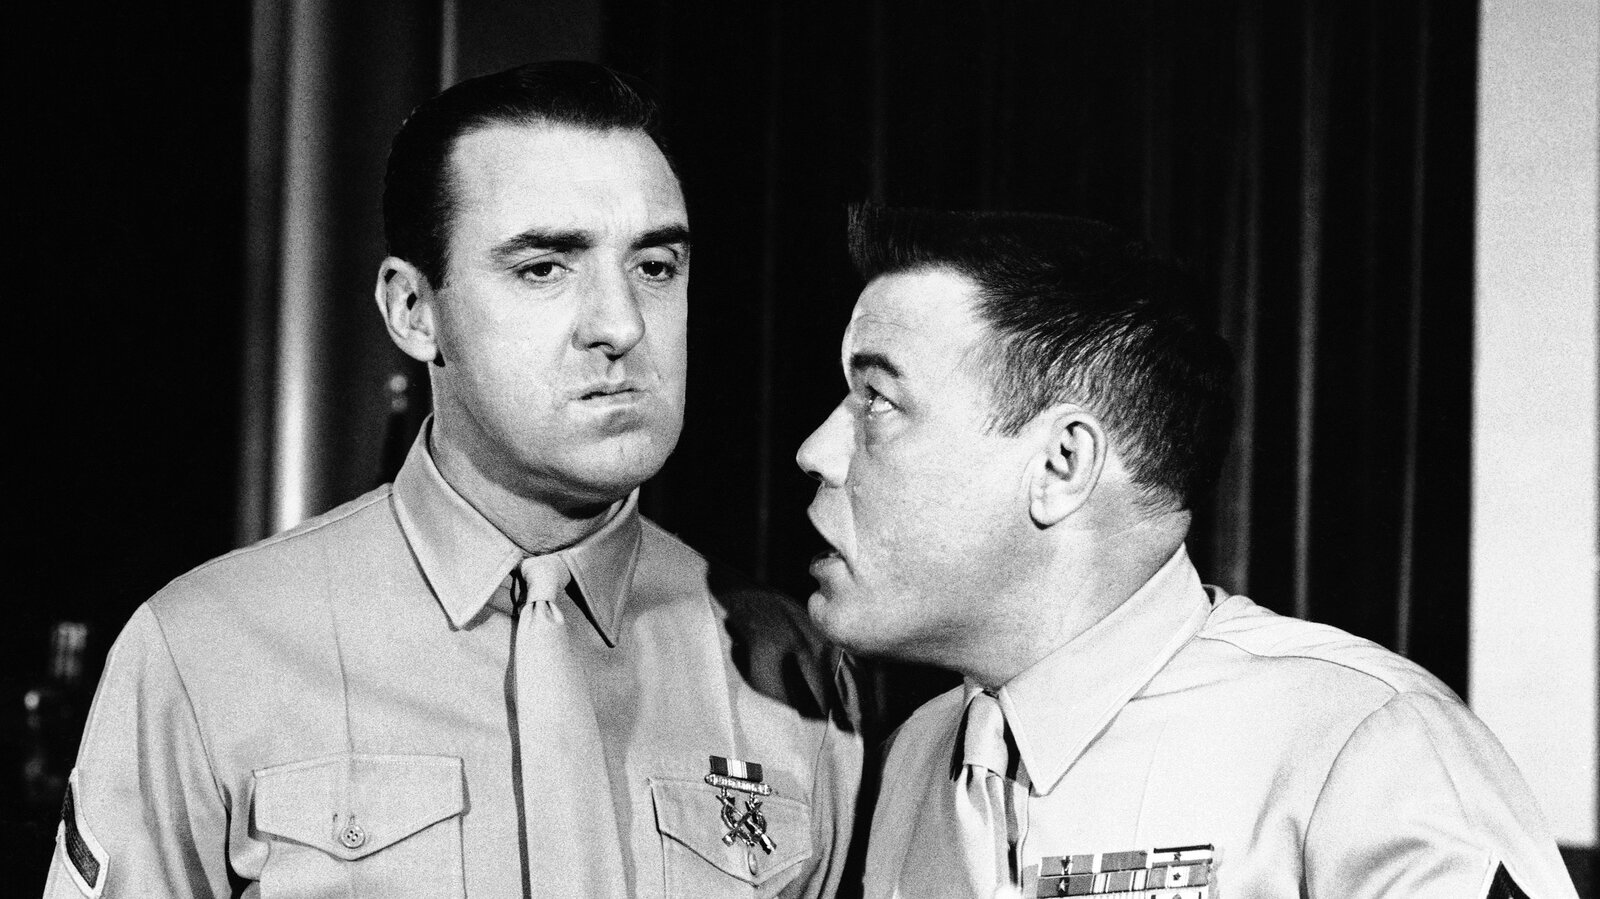 Jim Nabors, TV's Gomer Pyle, dies at 87